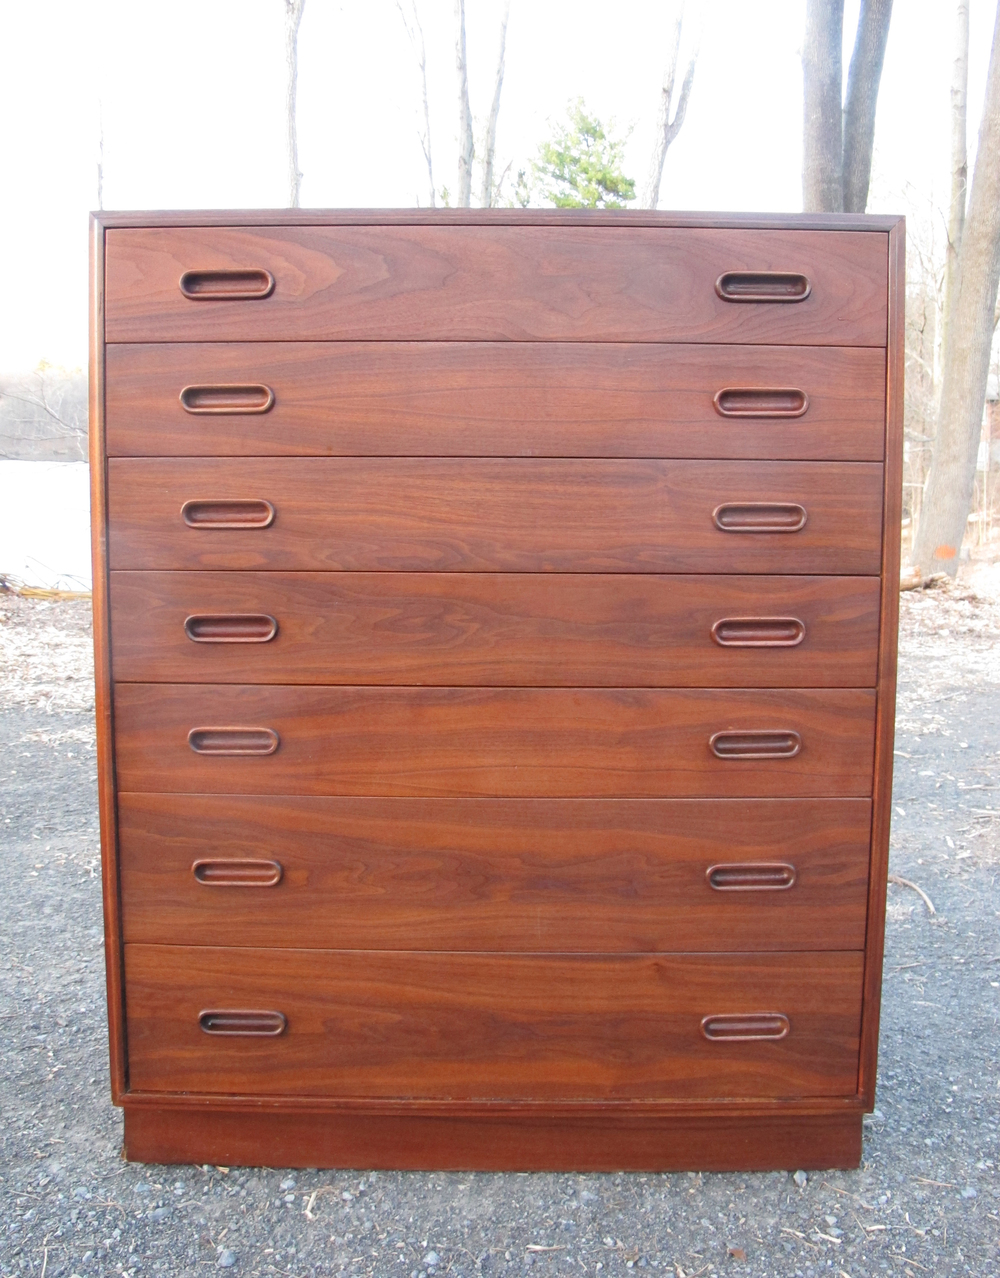 DANISH MODERN 7-DRAWER TEAK TALL DRESSER